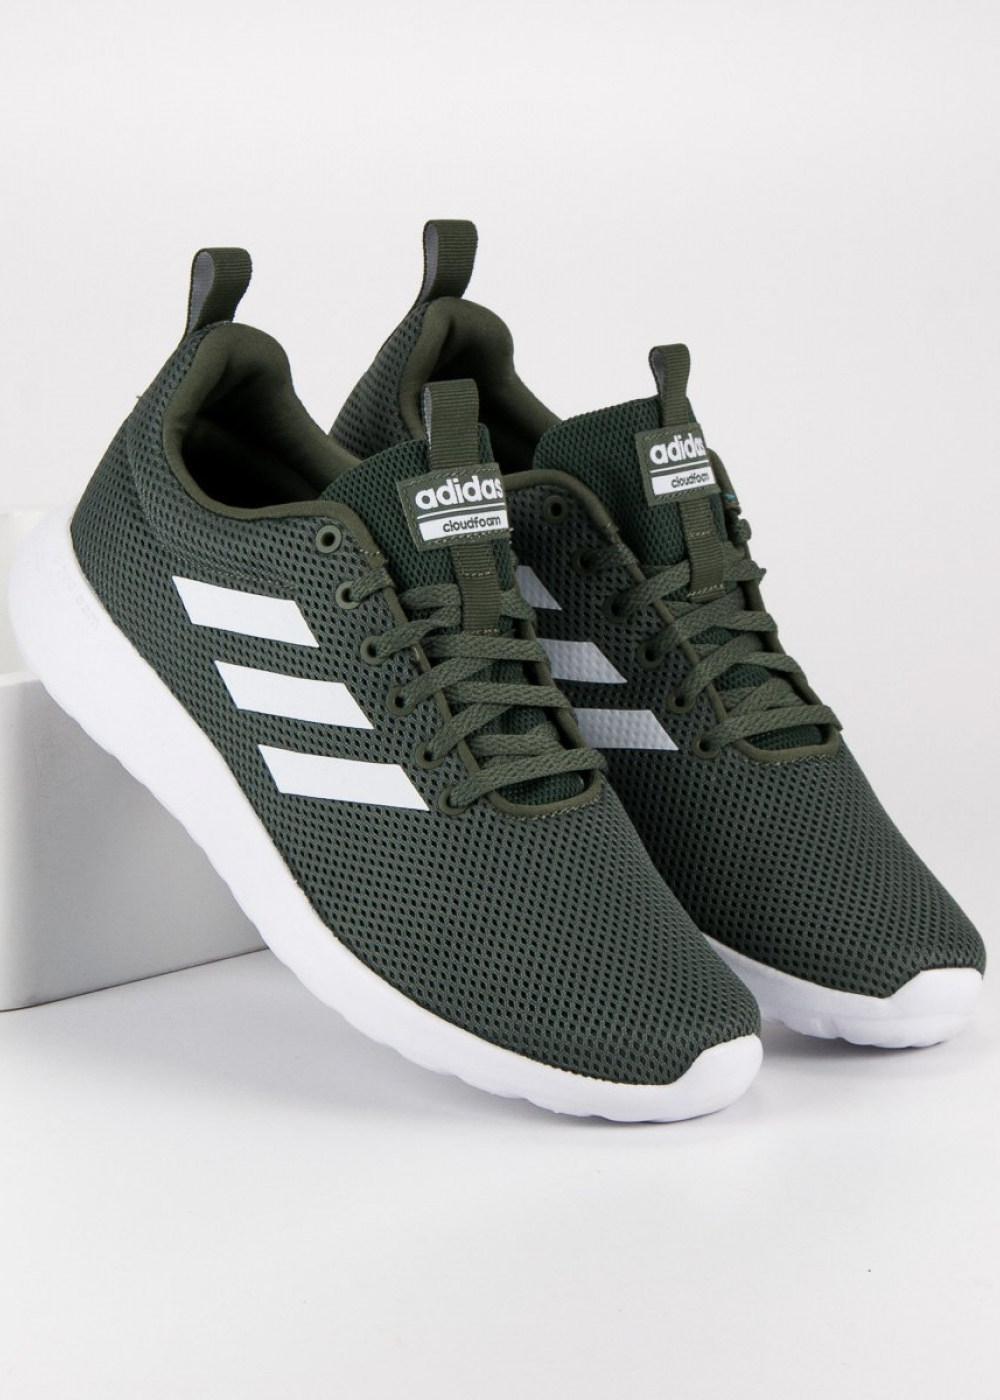 Adidas shoes Sneakers shoes Sport Lite Racer Clean green 2018 2018 2018 19 ab8215